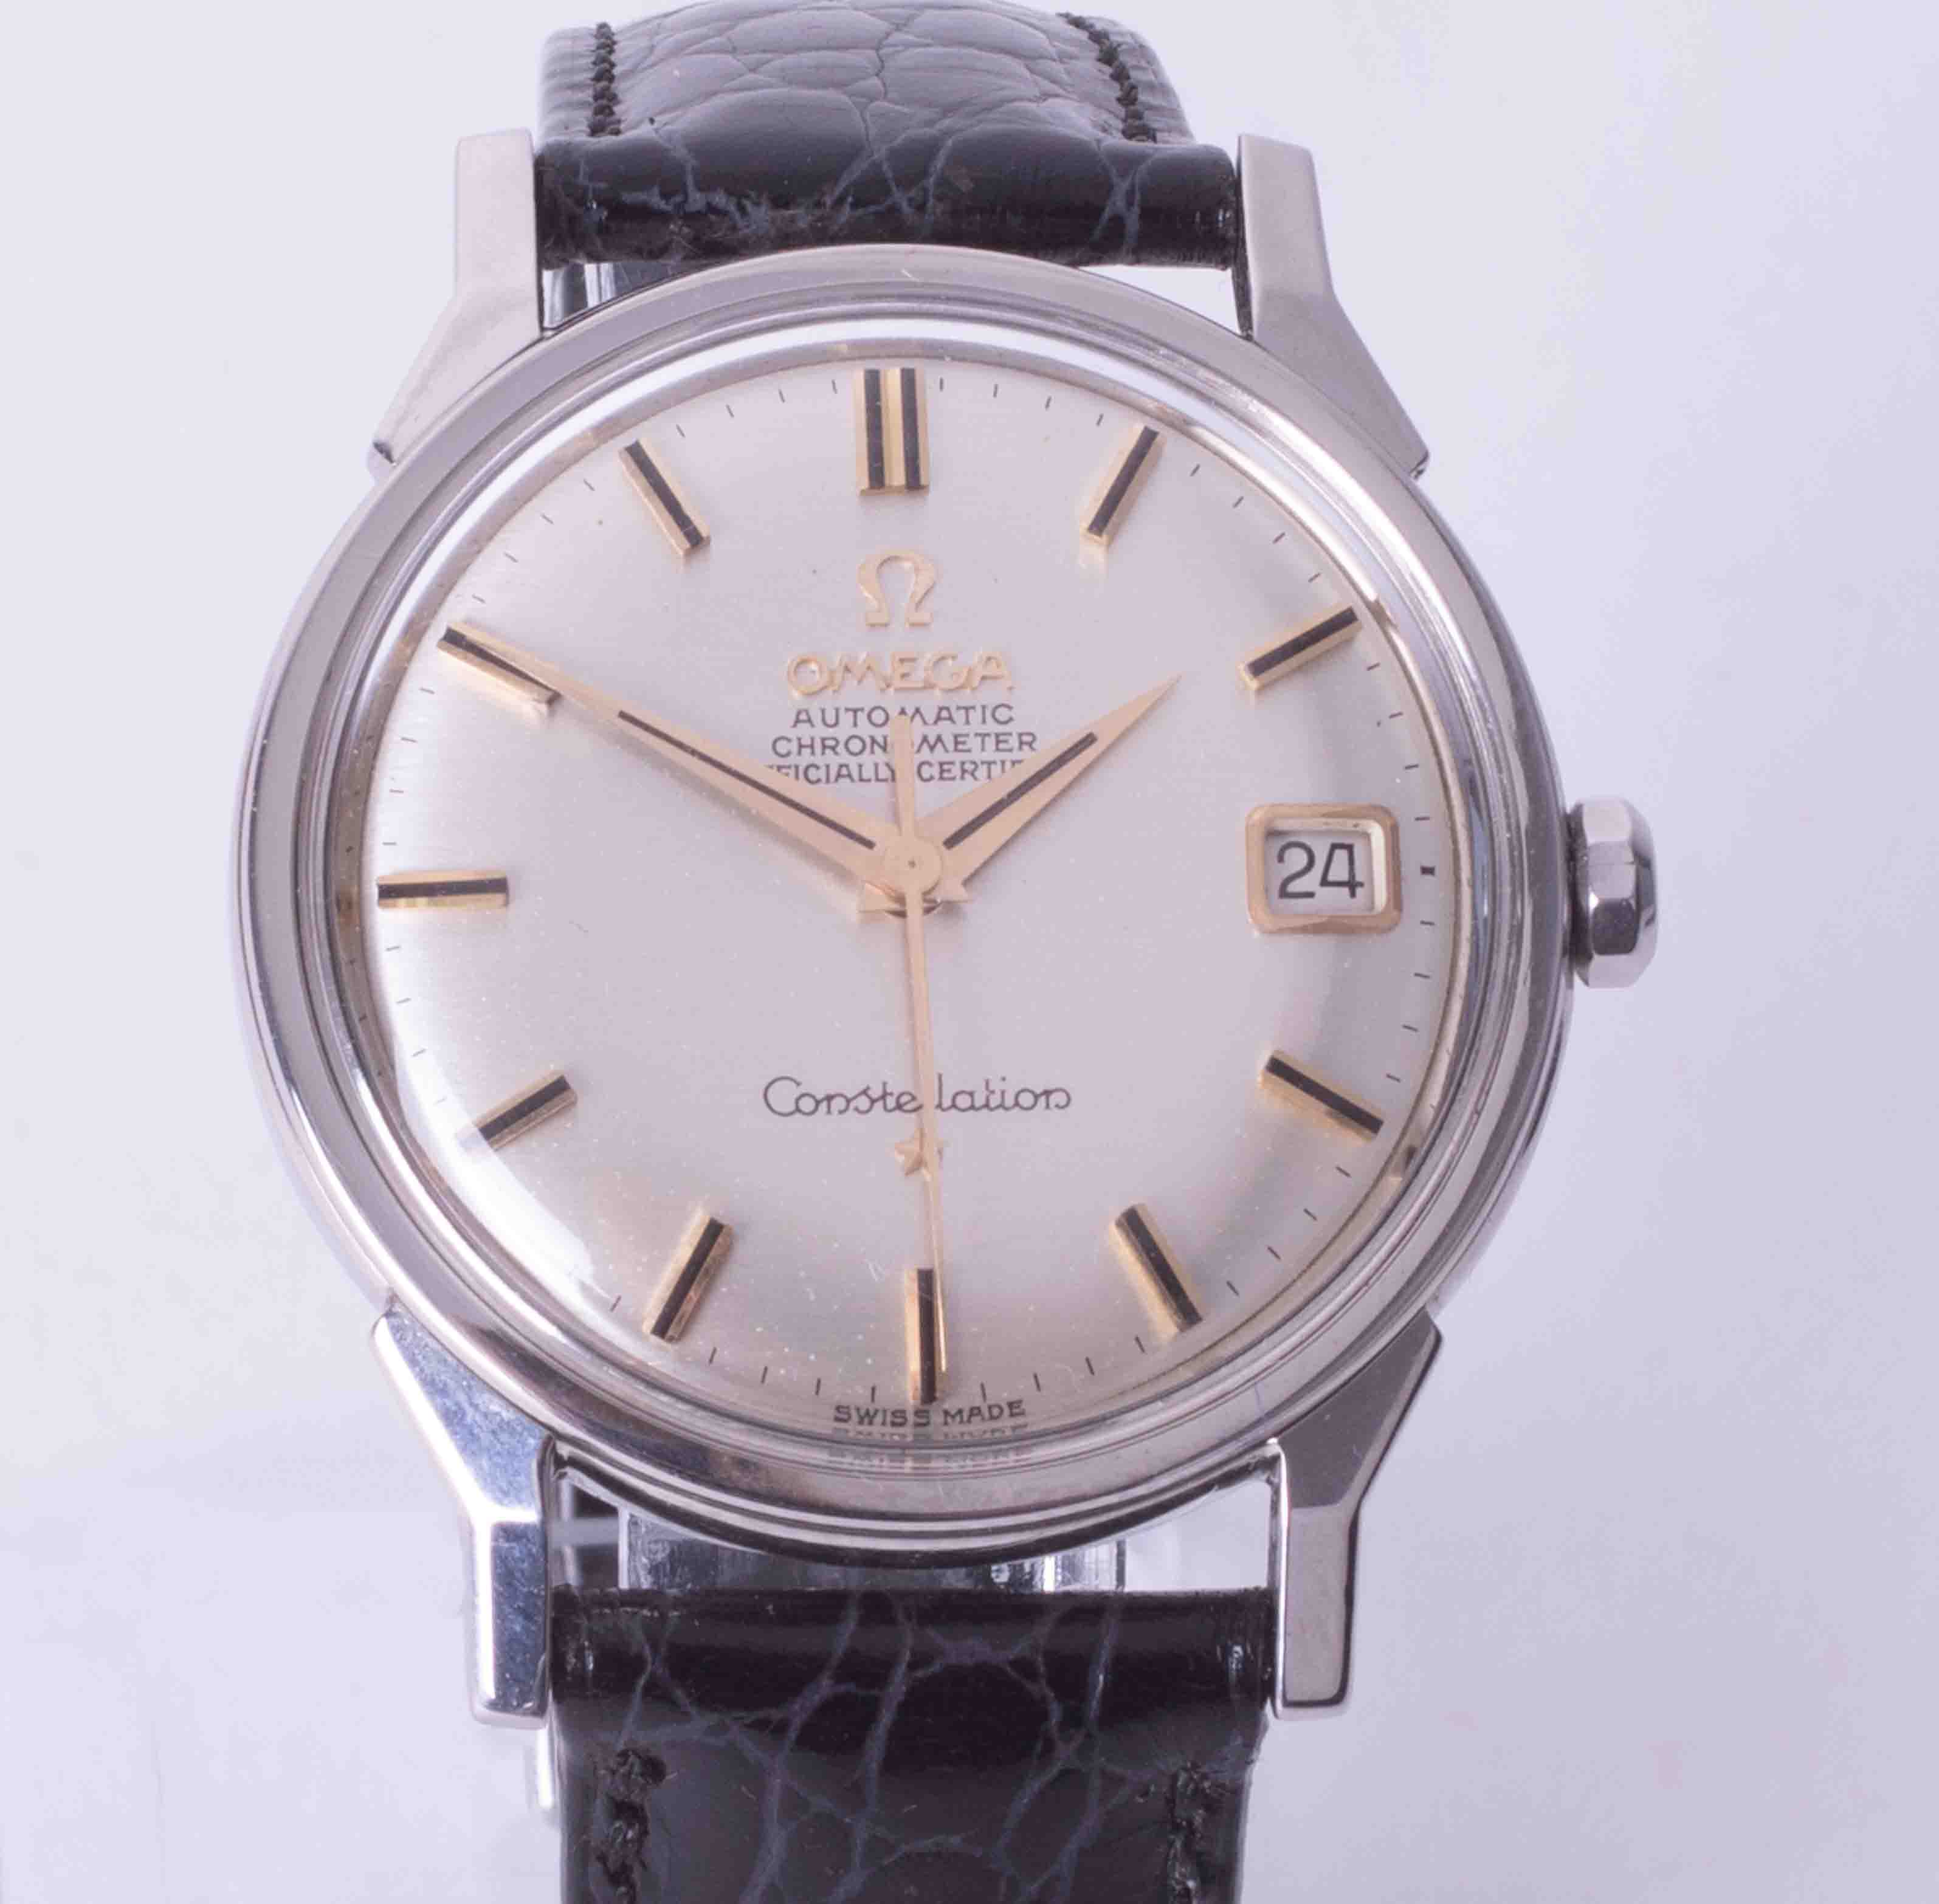 Omega, a gents stainless steel automatic chronometer Constellation wrist watch with date, silvered